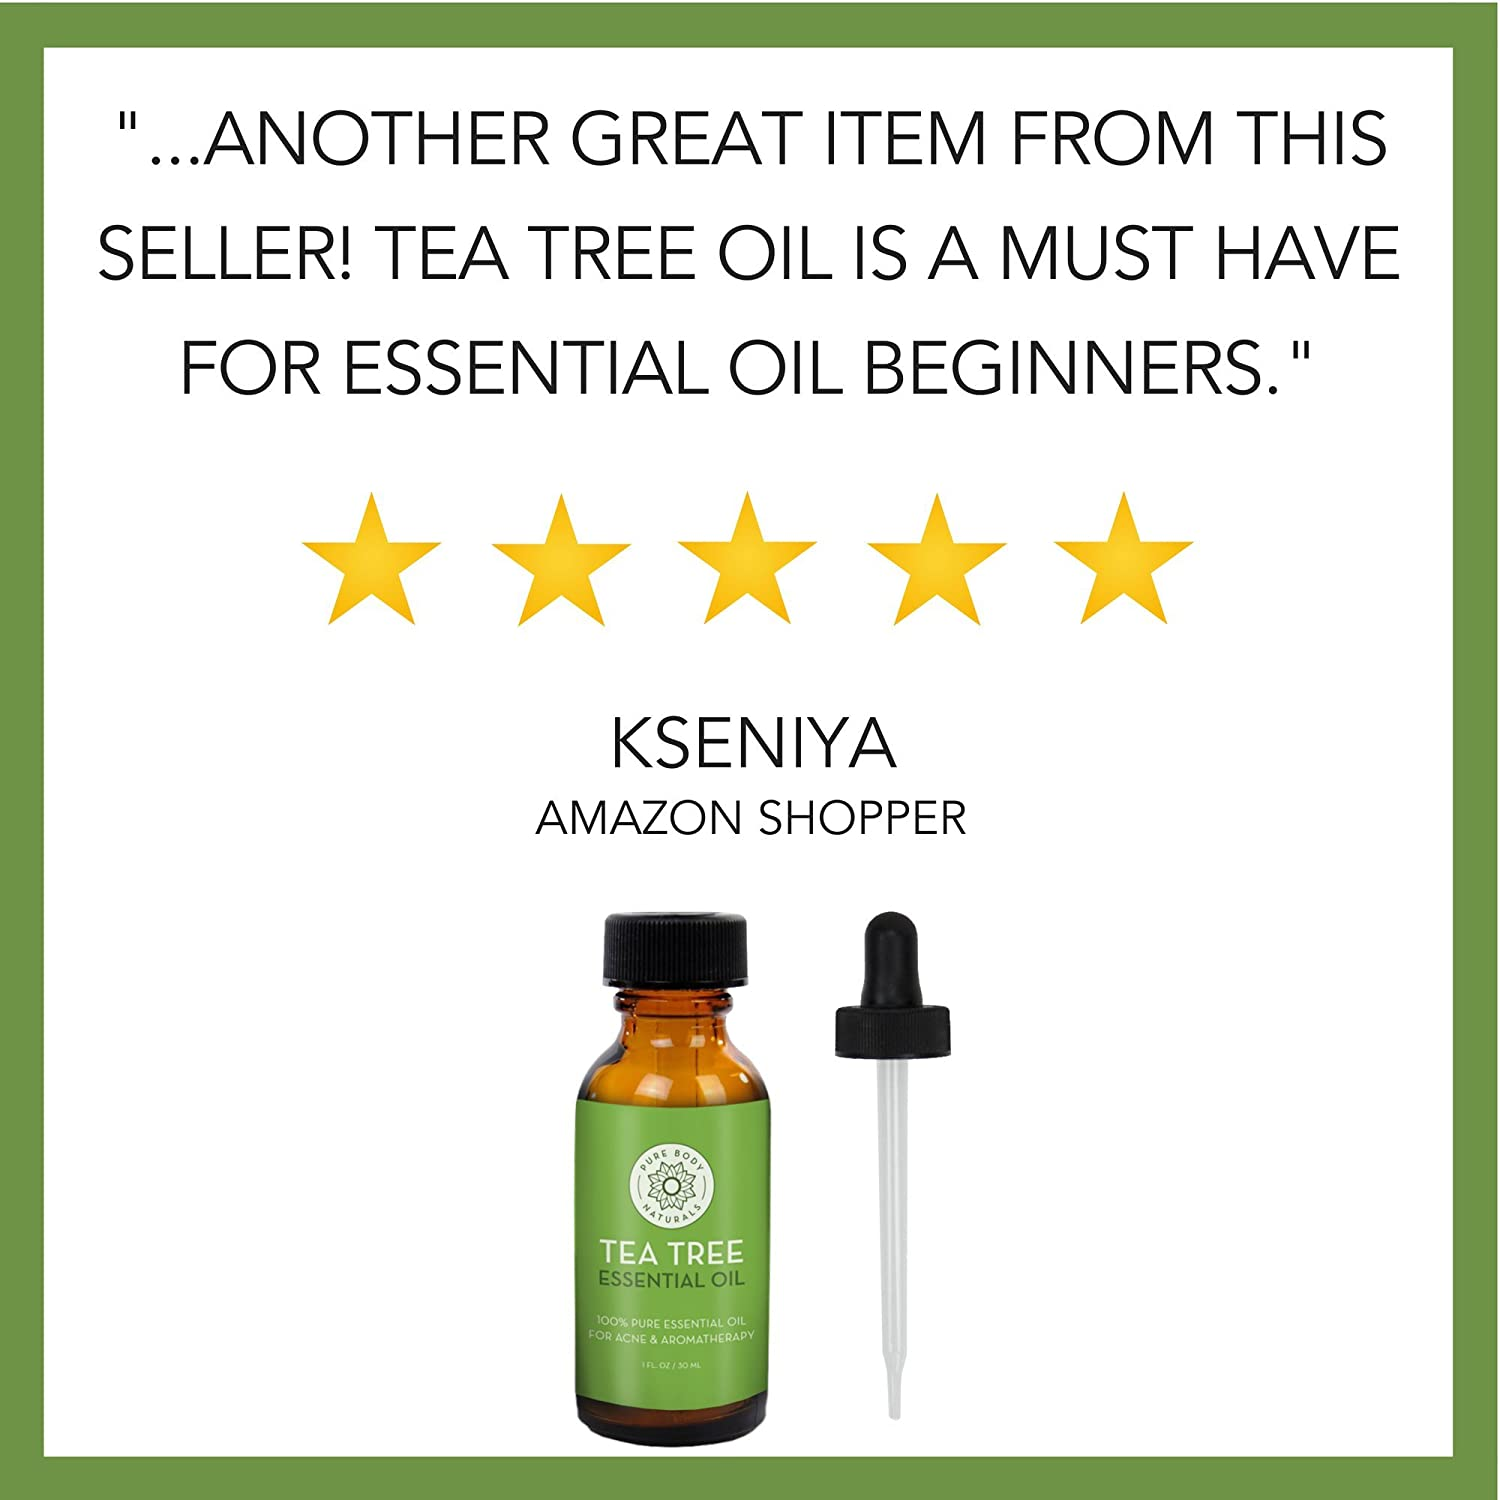 Tea Tree Essential Oil, Tea Tree Oil for Acne, Hair and Diffuser, 100% Pure  Melaleuca Oil by